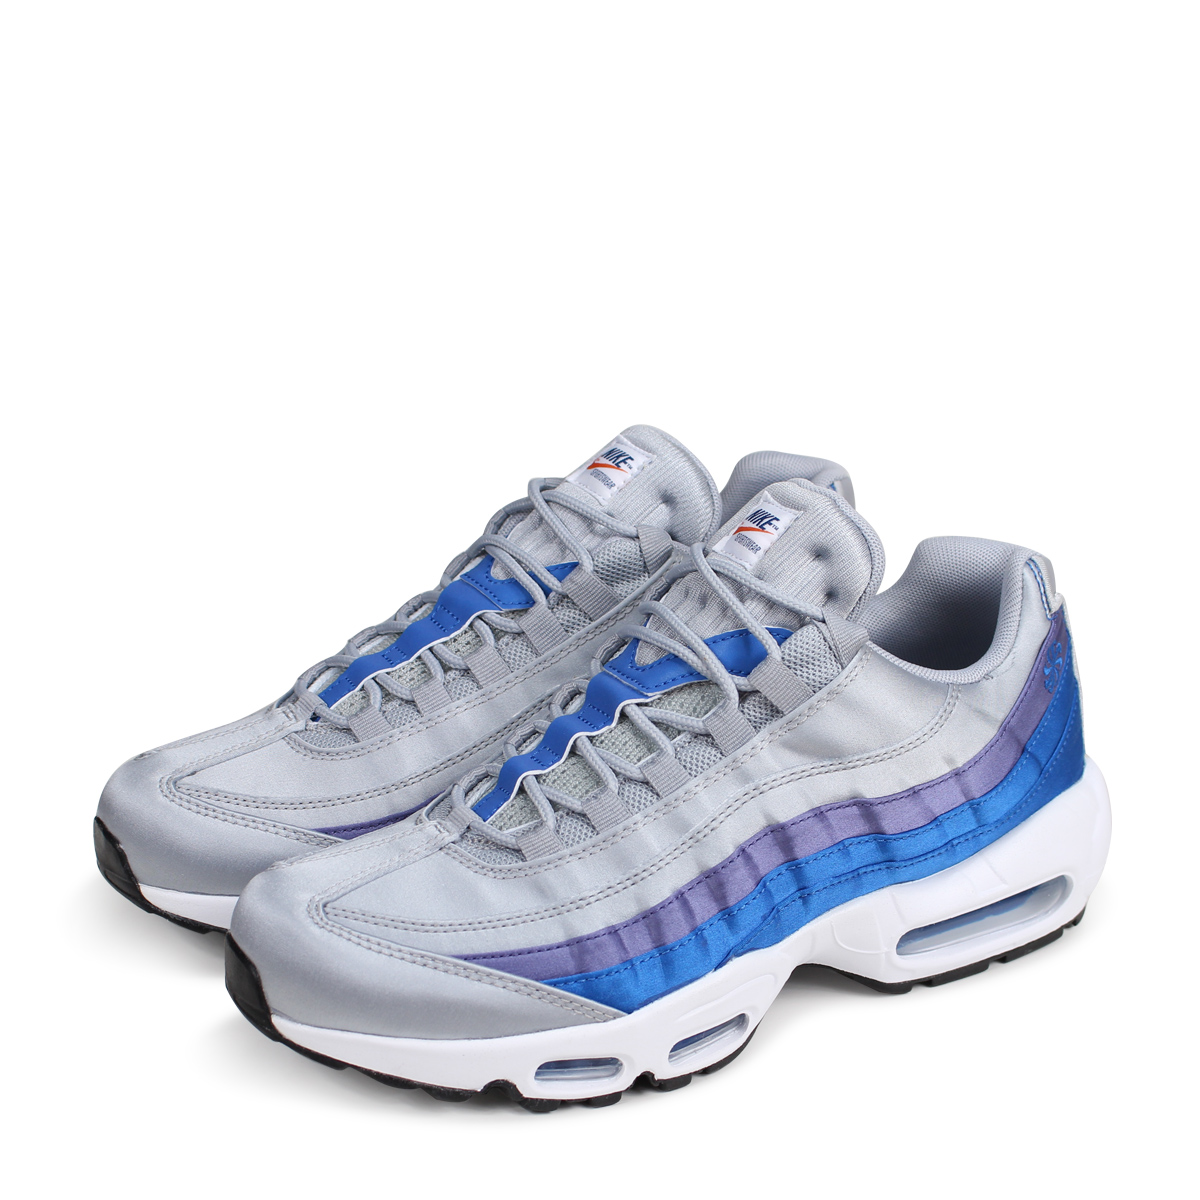 competitive price 4fb07 0f30a NIKE AIR MAX 95 SE Kie Ney AMAX 95 sneakers men AJ2018-001 blue [197]